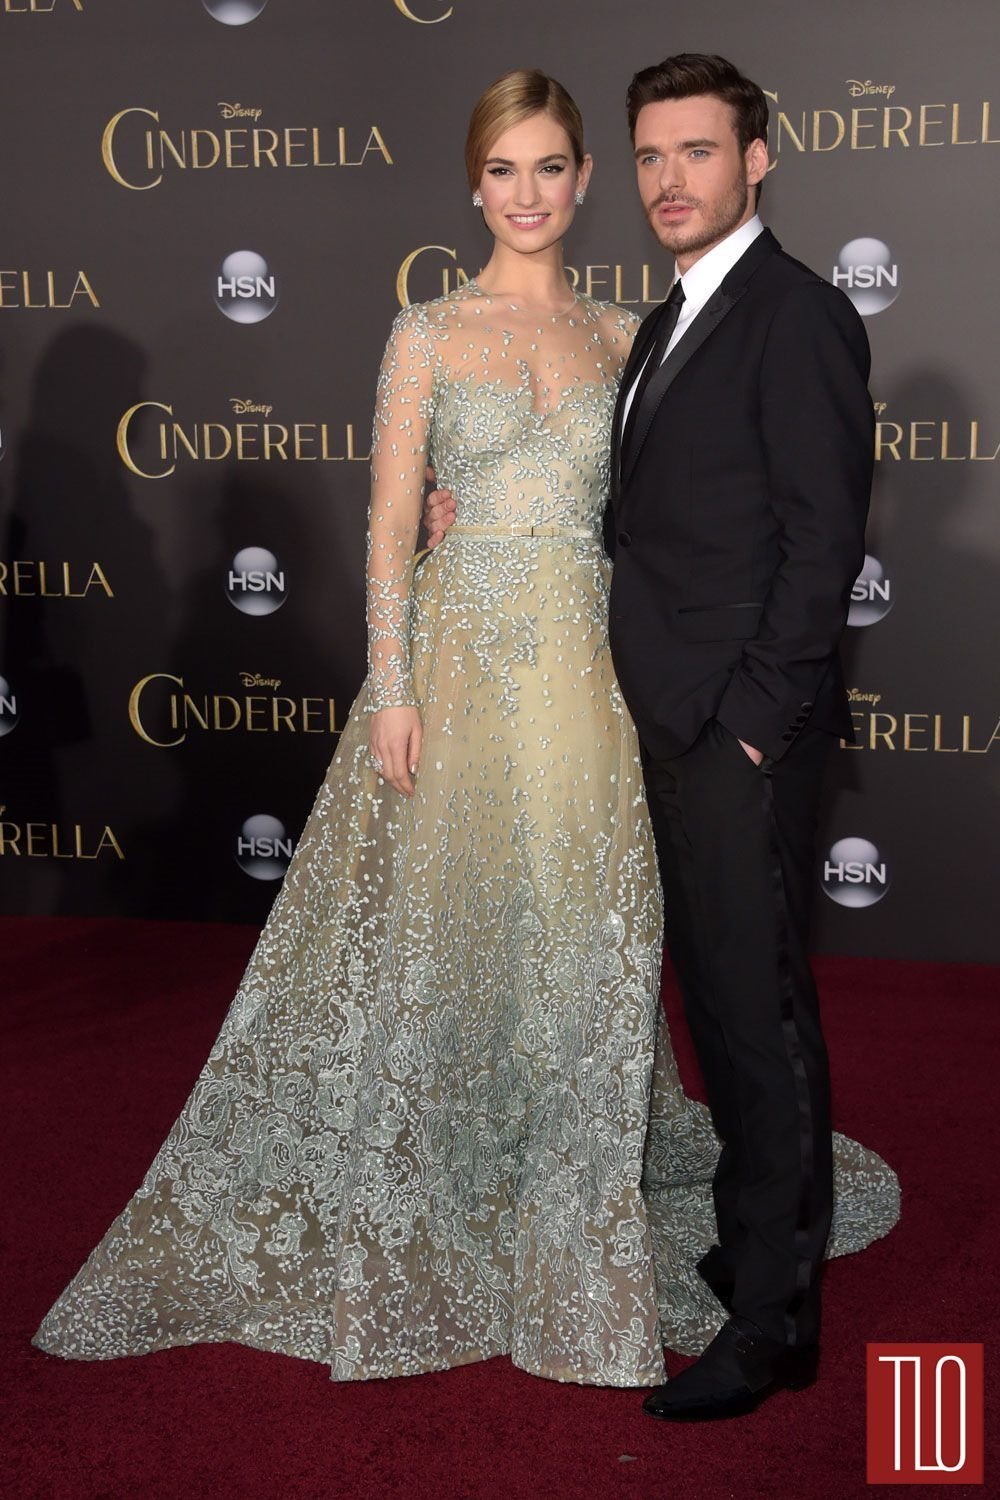 Lily james and richard madden best dressed pinterest lily